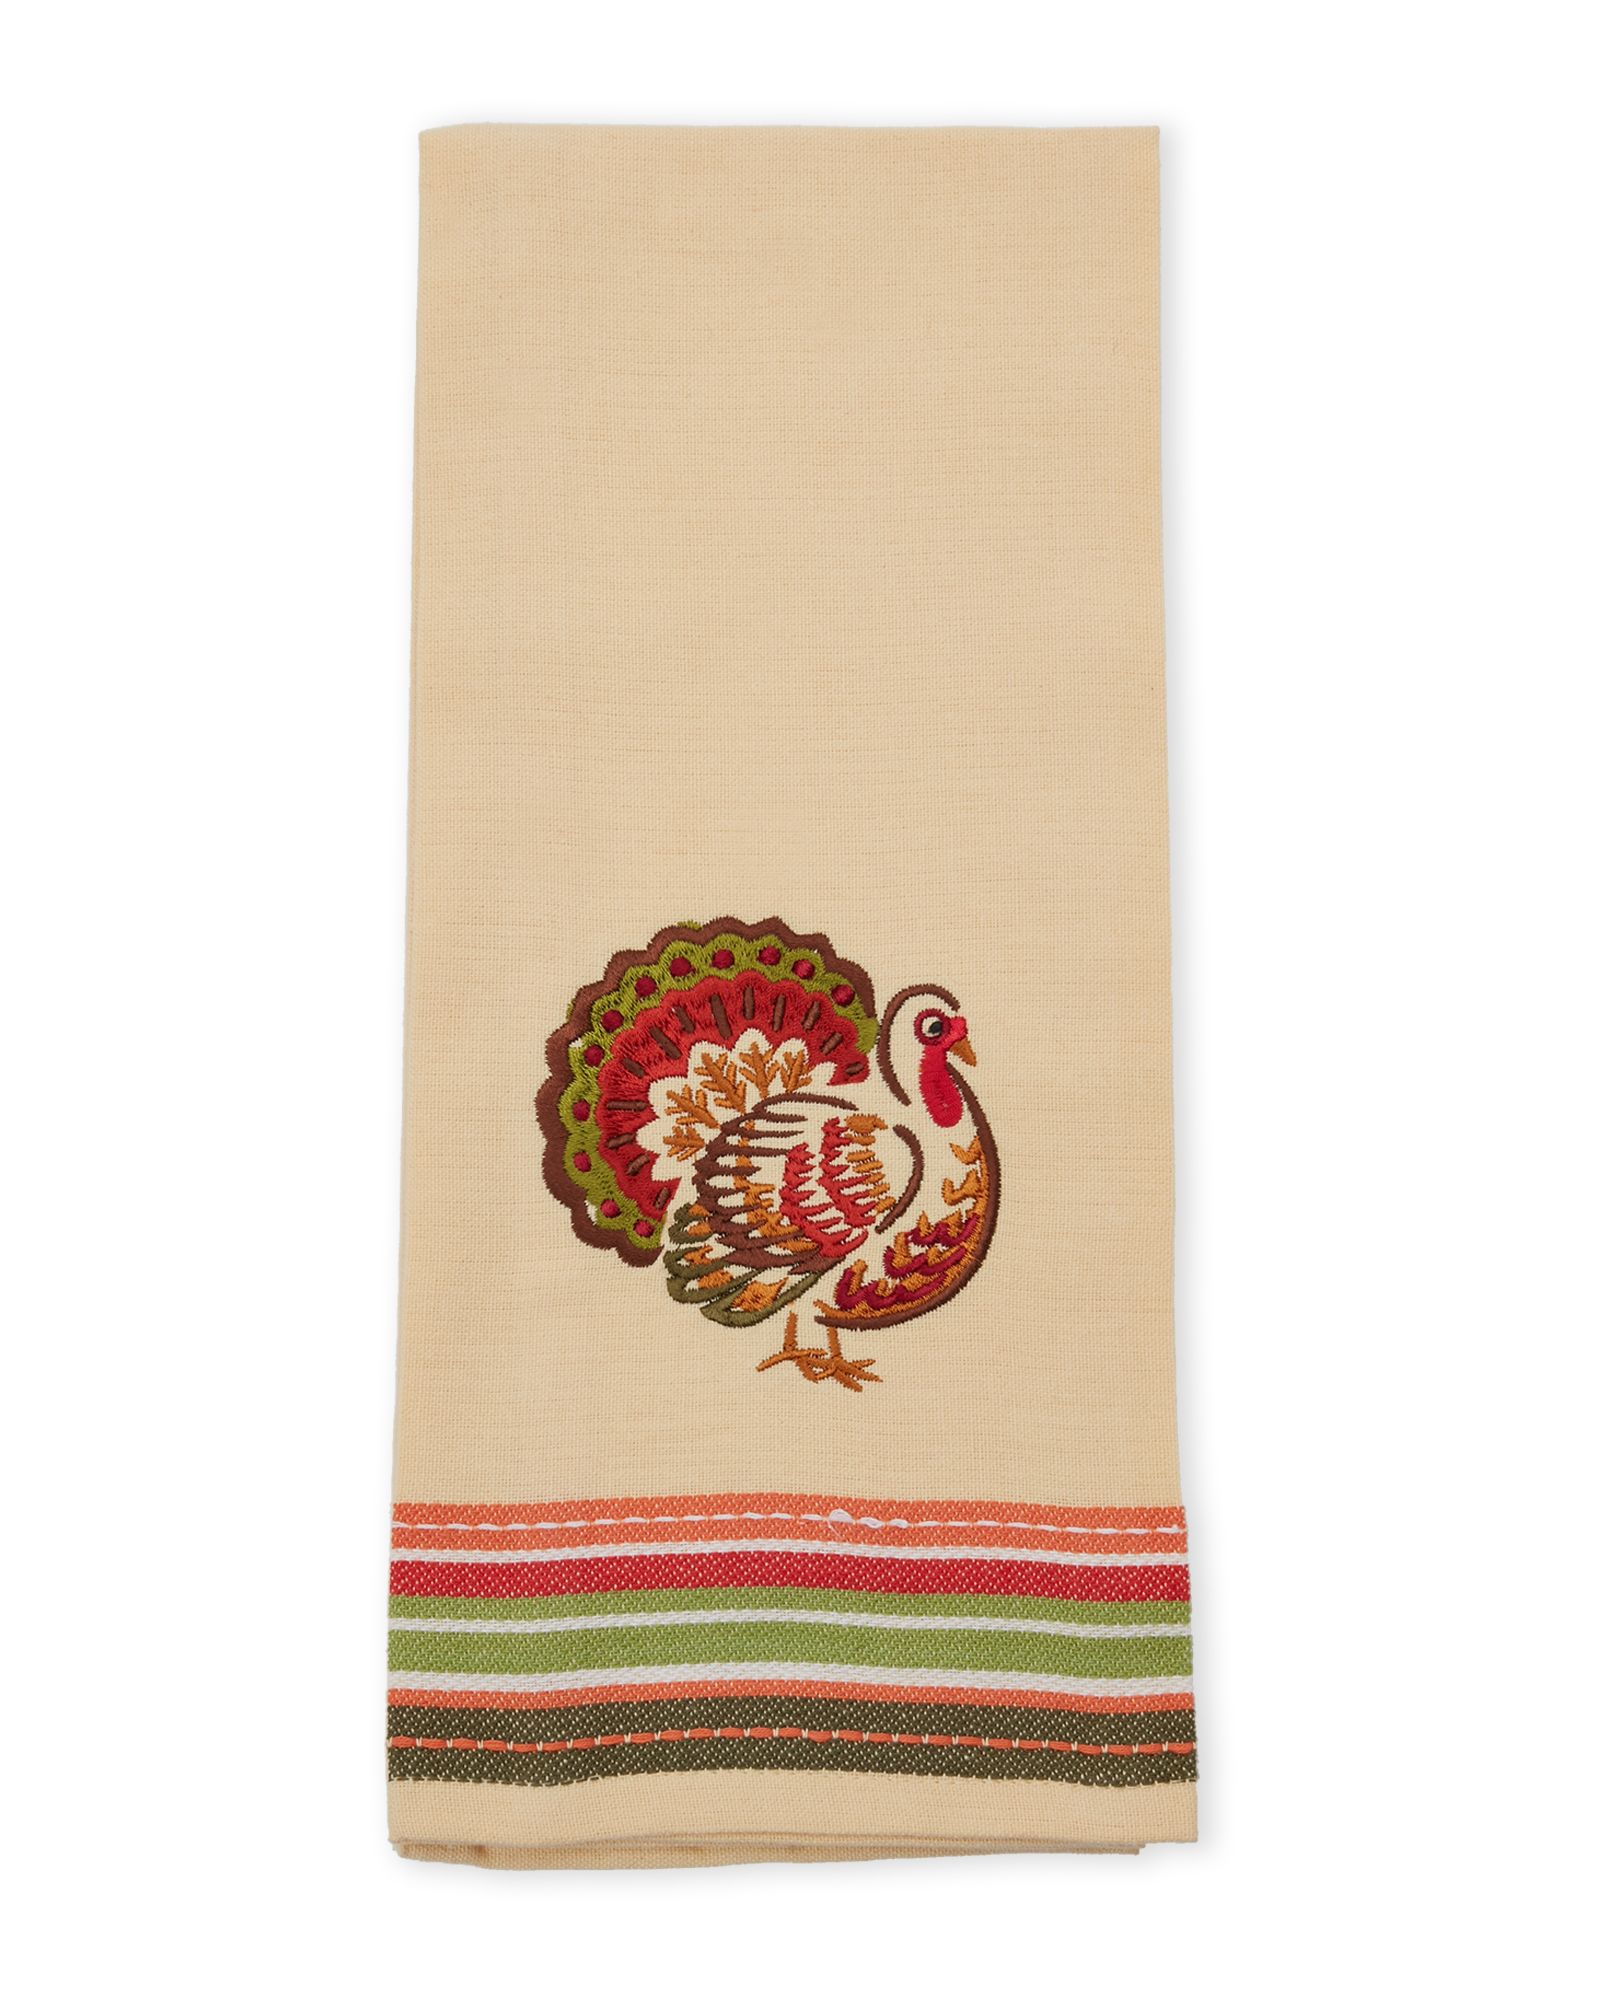 Kay Dee Designs Harvest Blessings Turkey Embroidered Tea Towel